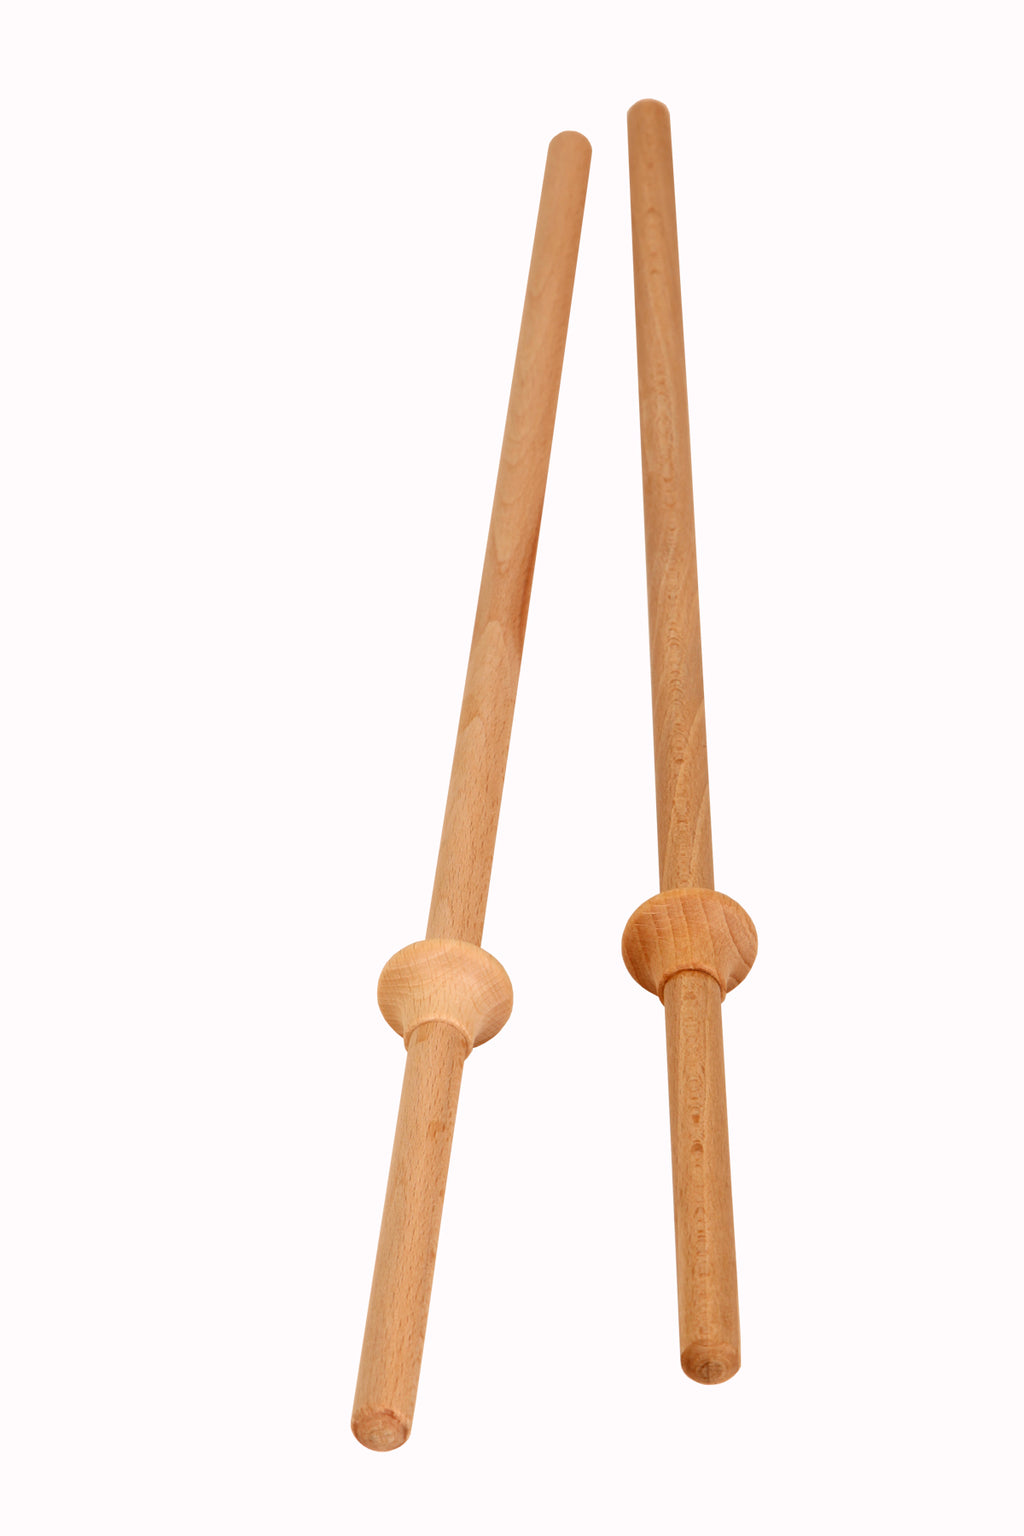 TicToys Tualoop, pair of sticks - Da Da Kinder Store